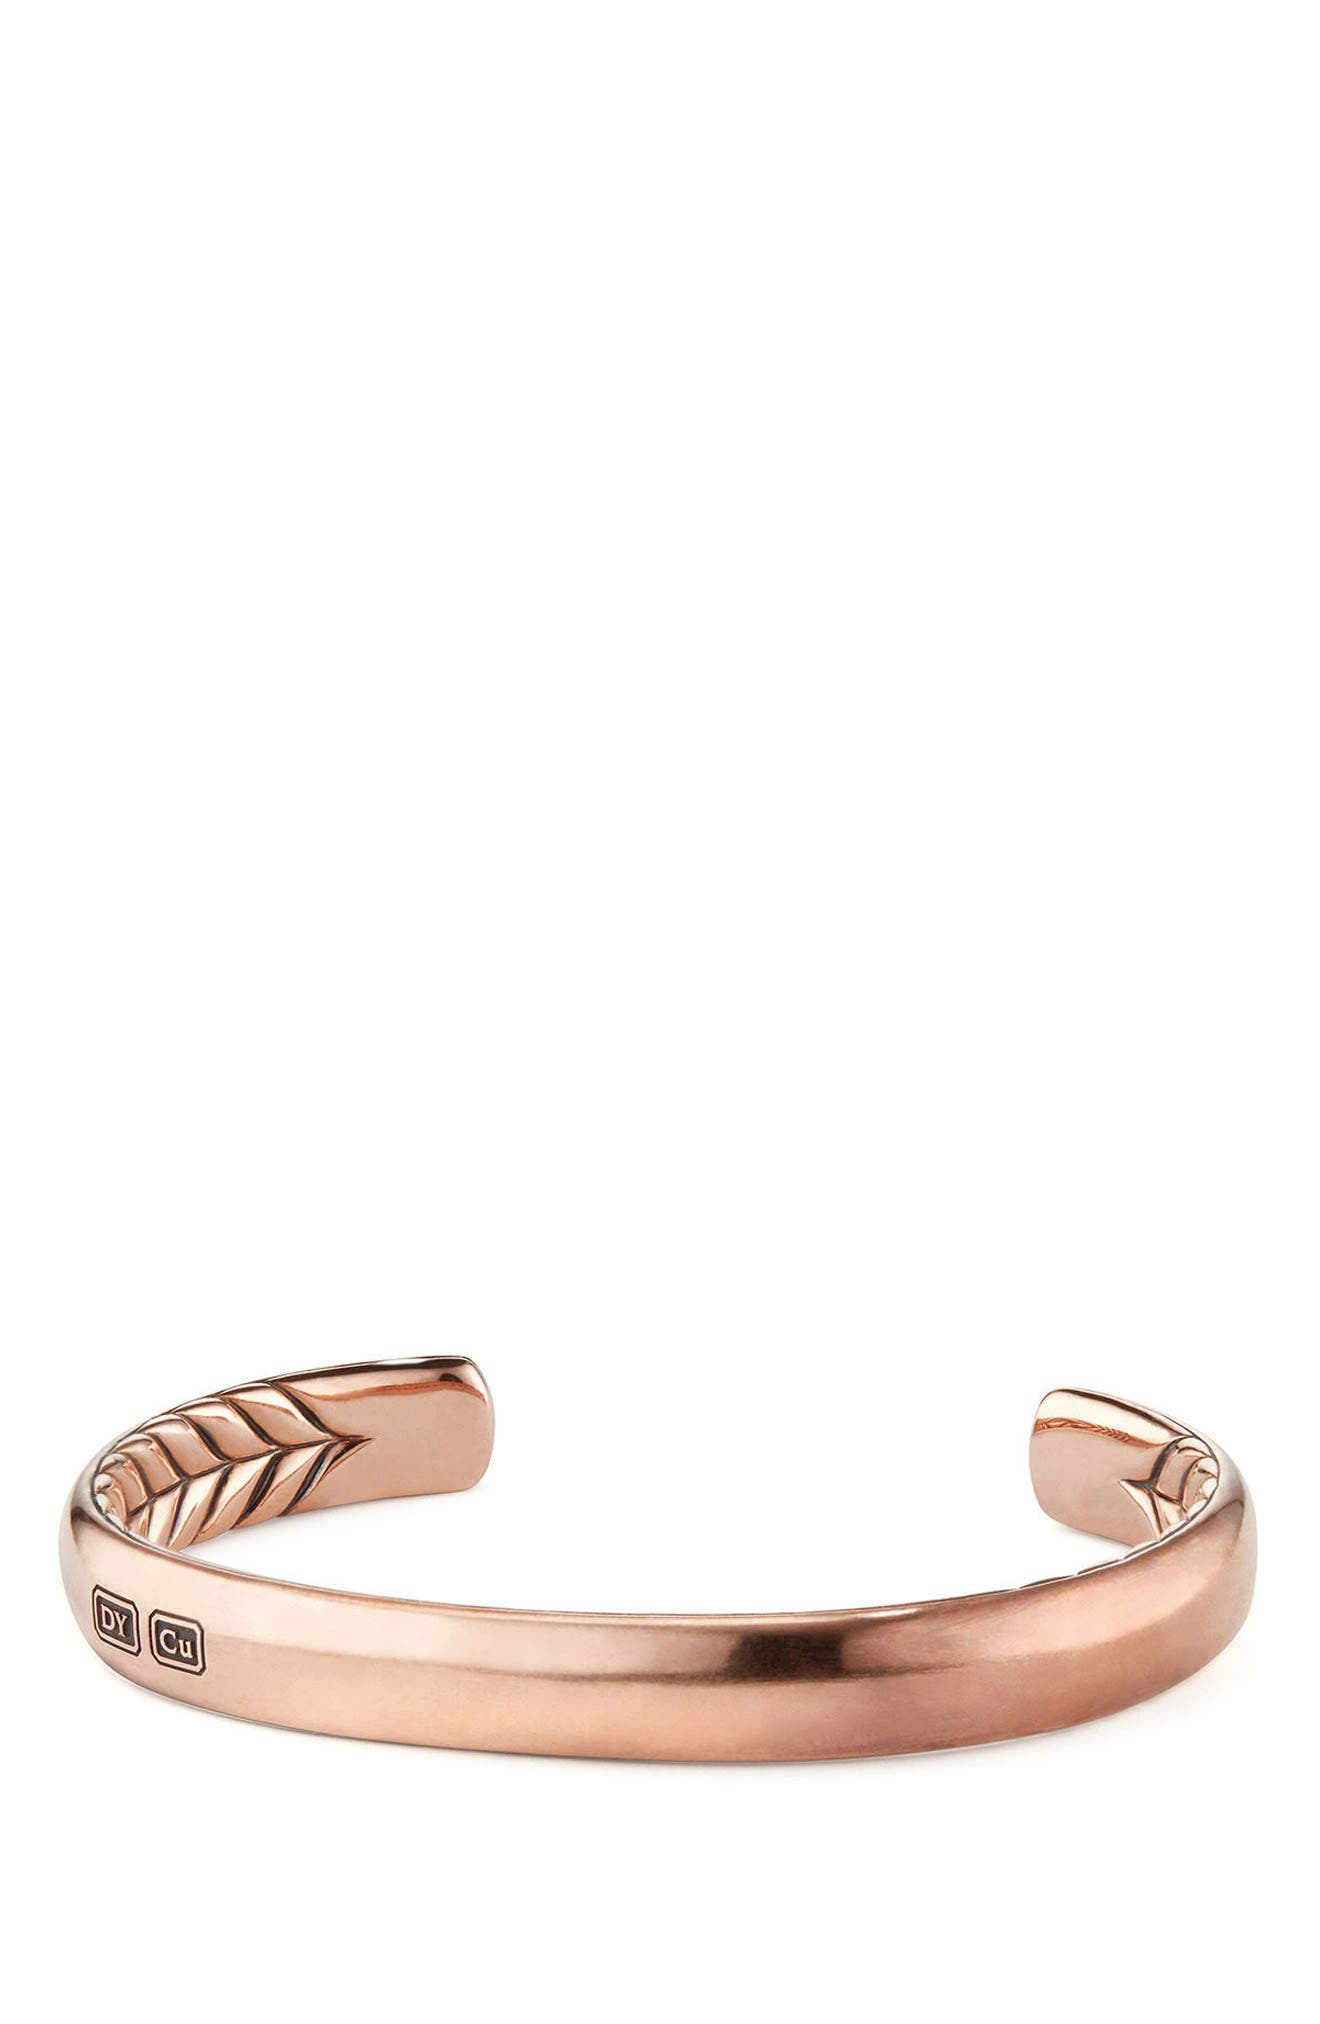 Titian Streamline Cuff Bracelet in Copper,                         Main,                         color, COPPER